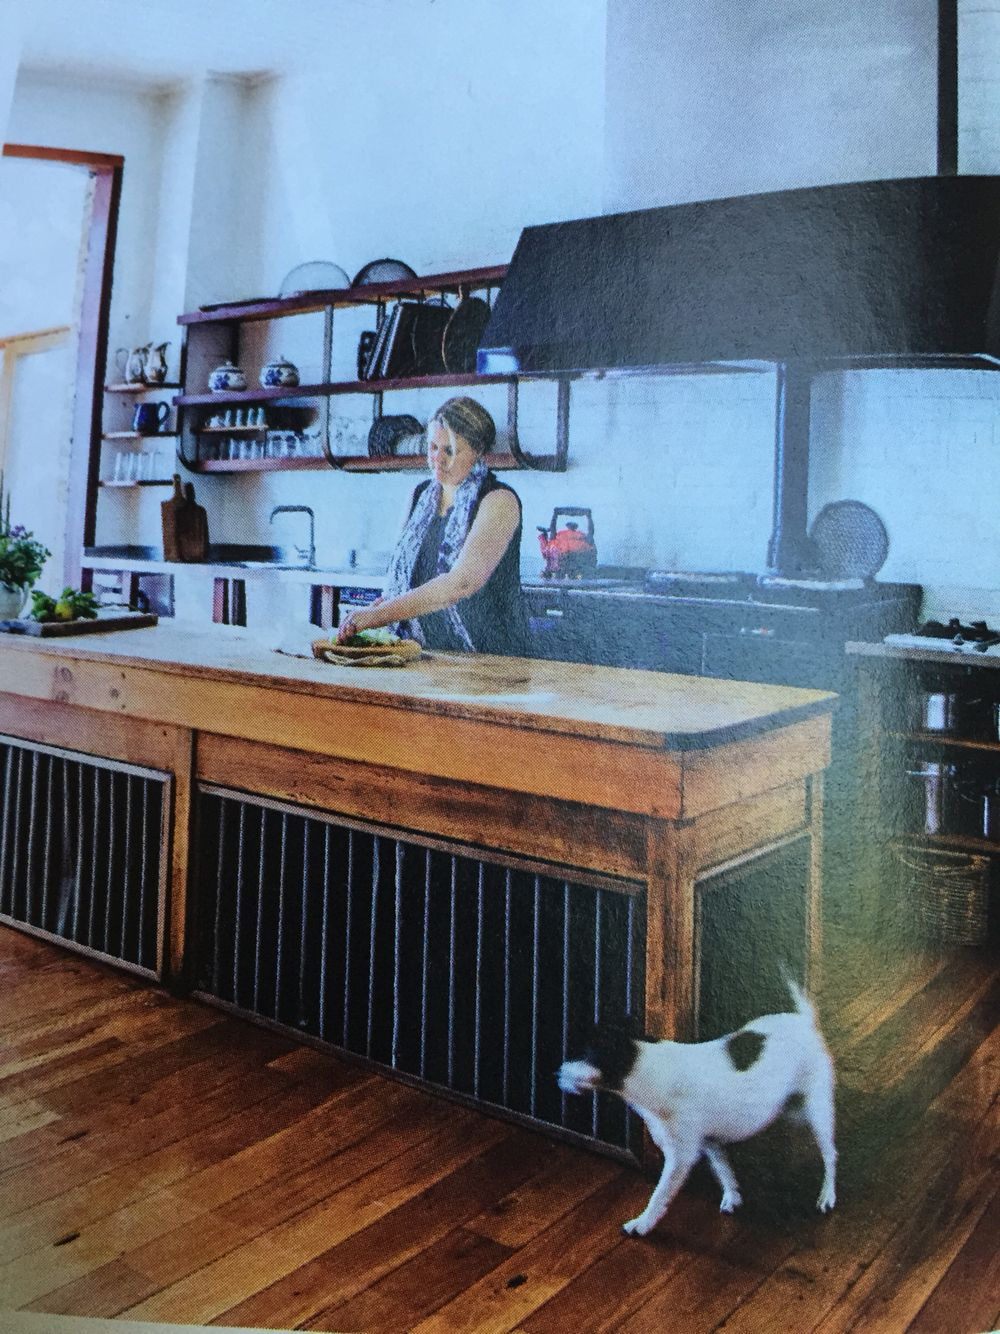 Rustic recycled kitchen | jack russell | Pinterest | Kitchens